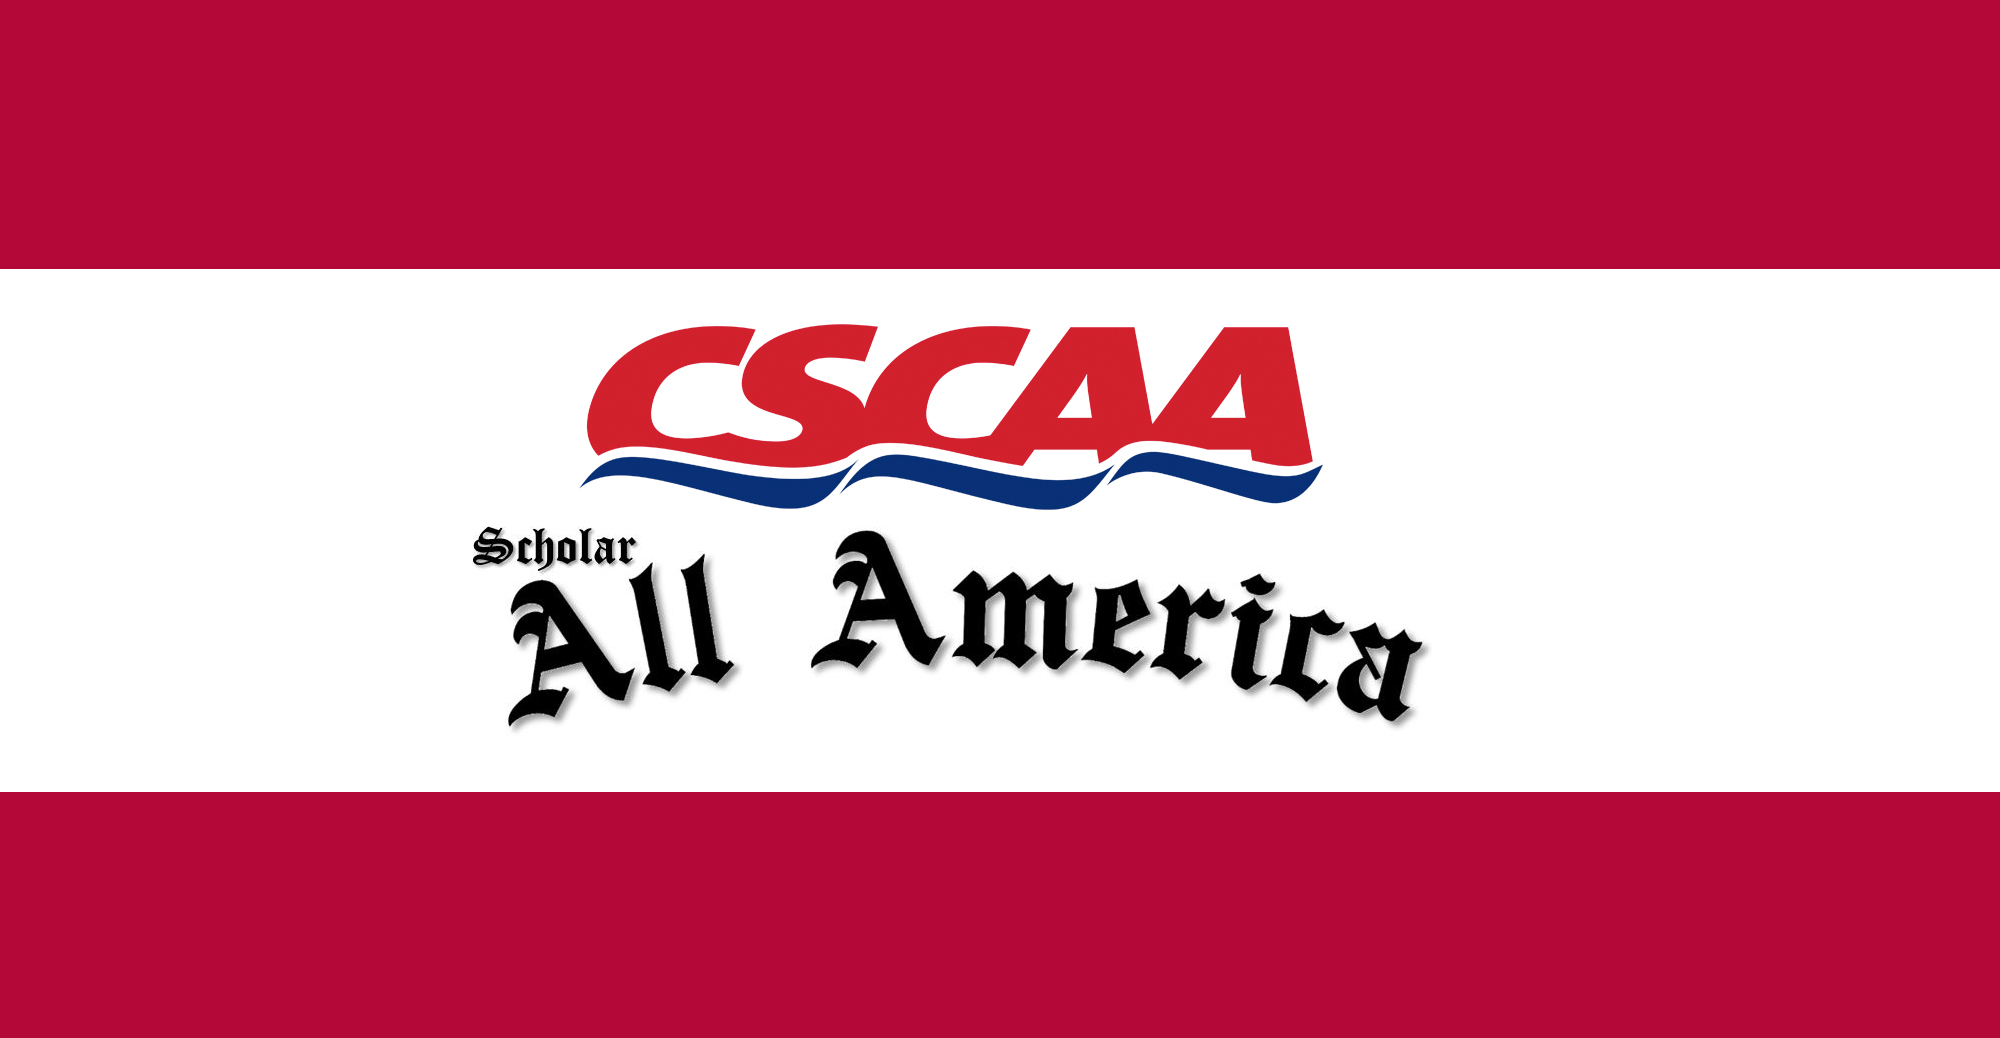 'Roo Men's and Women's Swimming Earn CSCAA Scholar All-America Honors